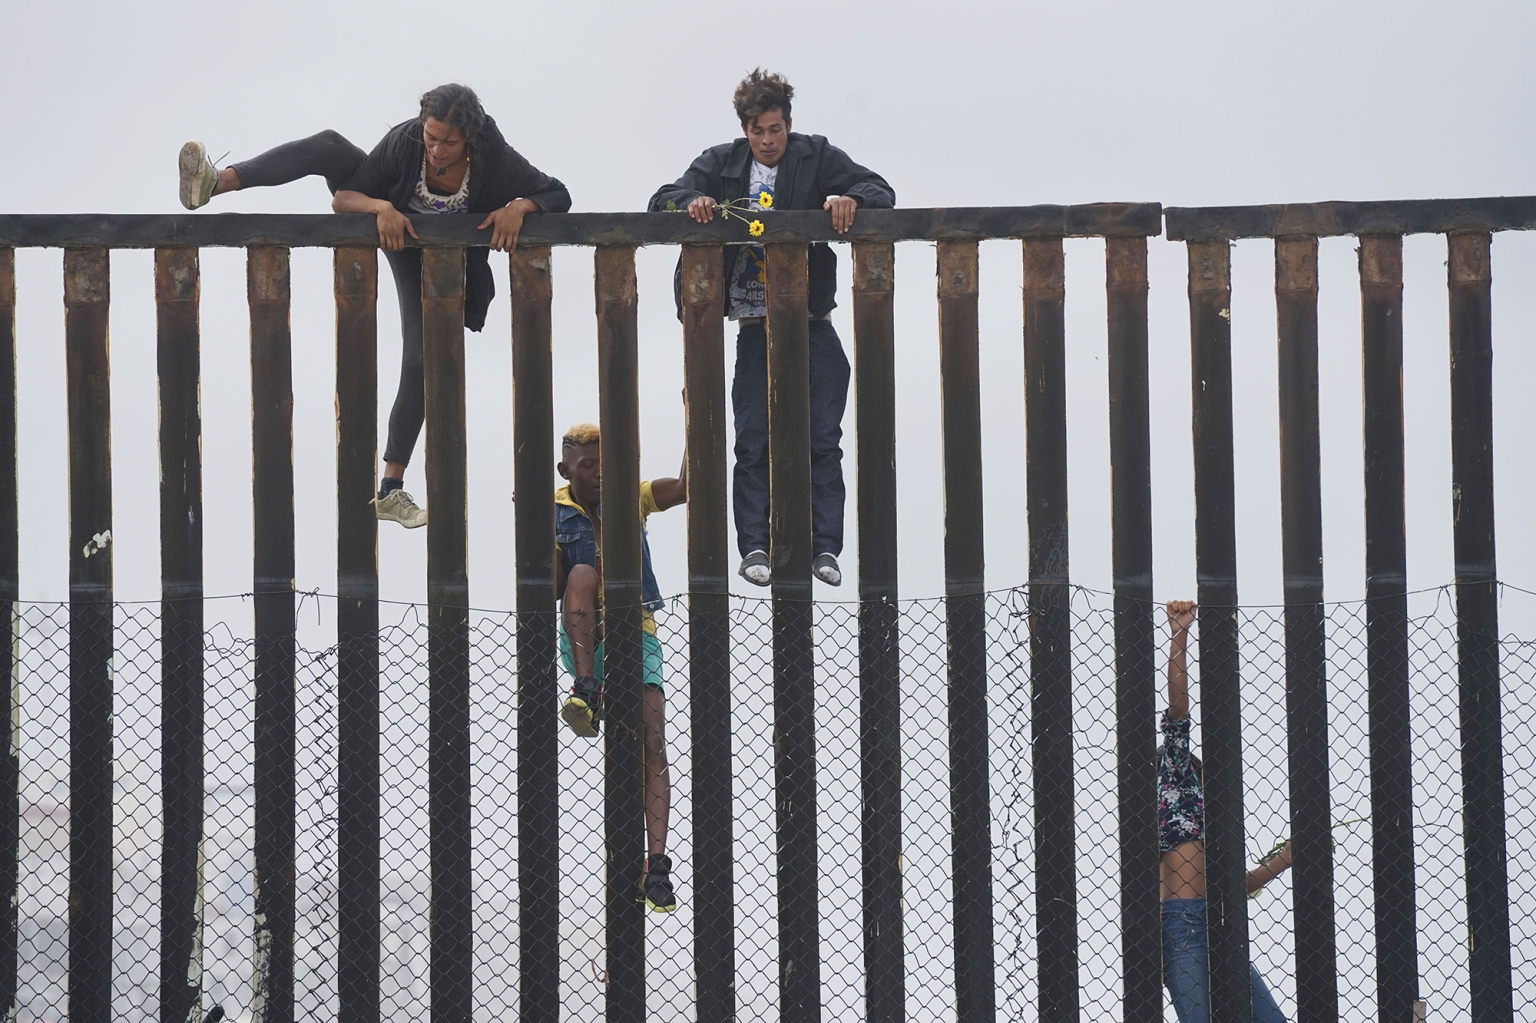 Migrant demonstrators climb the U.S.-Mexico border fence during a rally April 29 in San Ysidro, California. The U.S. has threatened to arrest migrants from the caravan that has reached the border if they try to sneak in. Organizers said May 3 that 150 from the group had crossed the border already to seek asylum. SANDY HUFFAKER/AFP/Getty Images